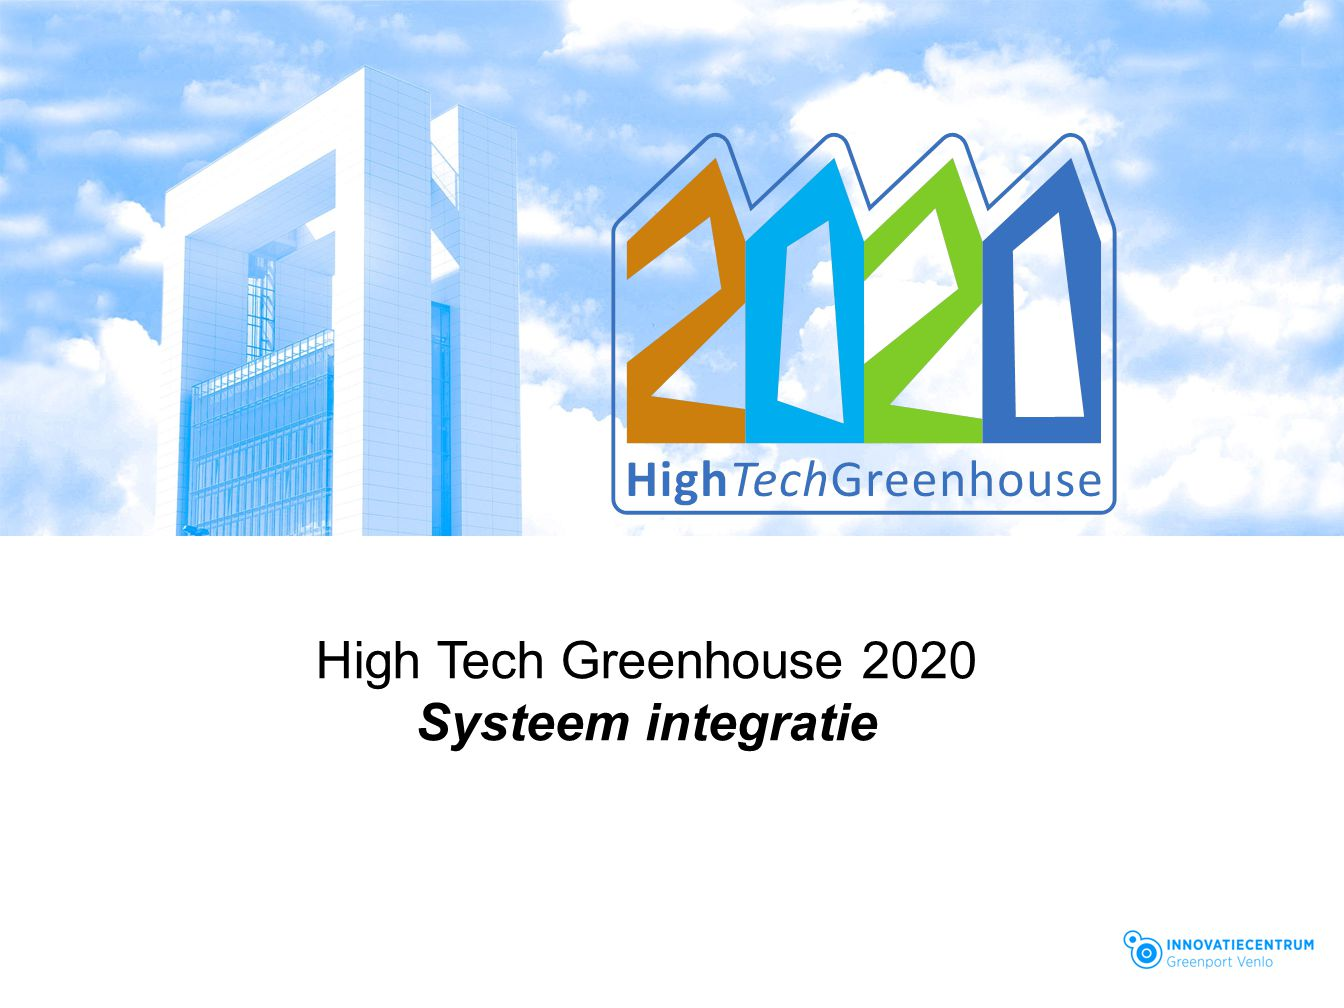 High Tech Greenhouse 2020 Systeem integratie